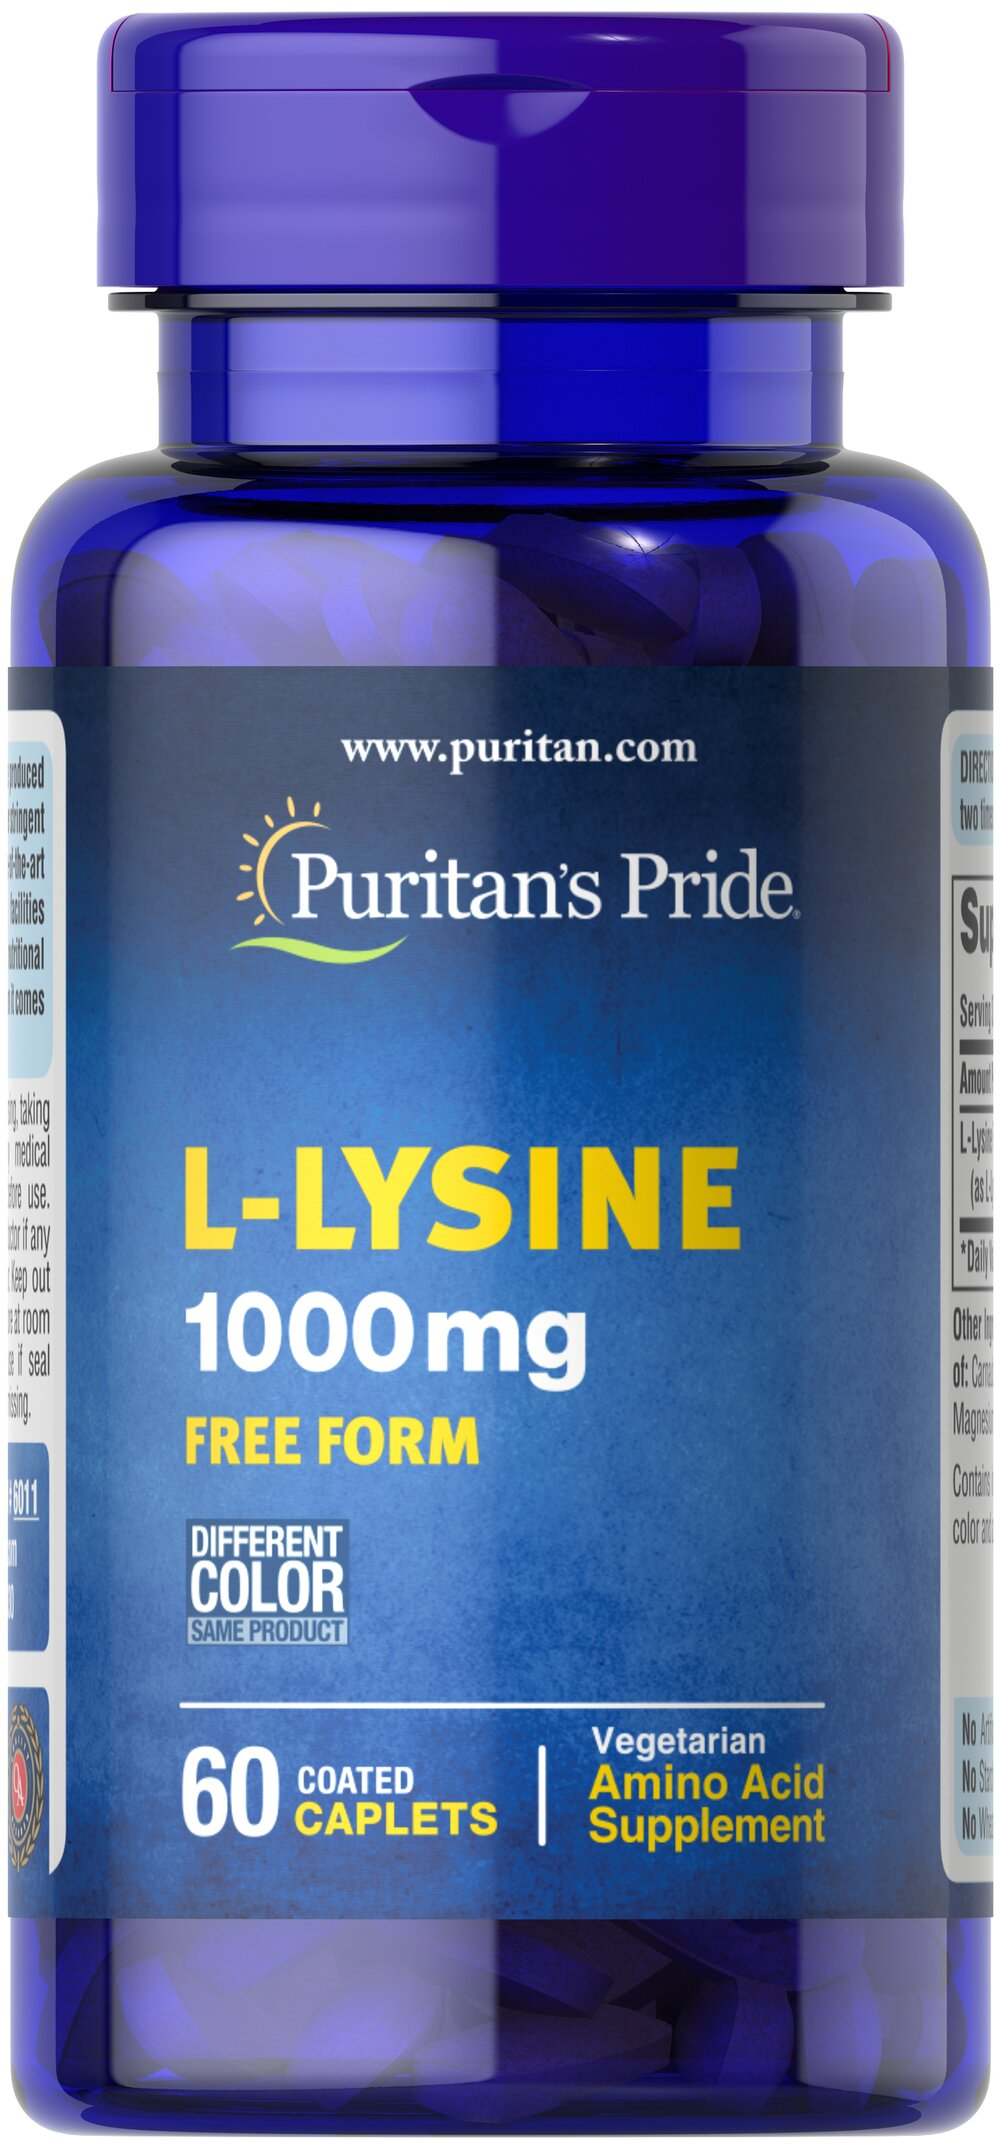 L-Lysine 1000 mg <p>For Balanced Nutrition and Health**</p><p>Lysine is an indispensable amino acid that cannot be made by the body.** Amino acids form the basis for protein, which helps construct and maintain the critical structures in the body.** Lysine is also used for the health and integrity of skin.**</p> 60 Caplets 1000 mg $8.29